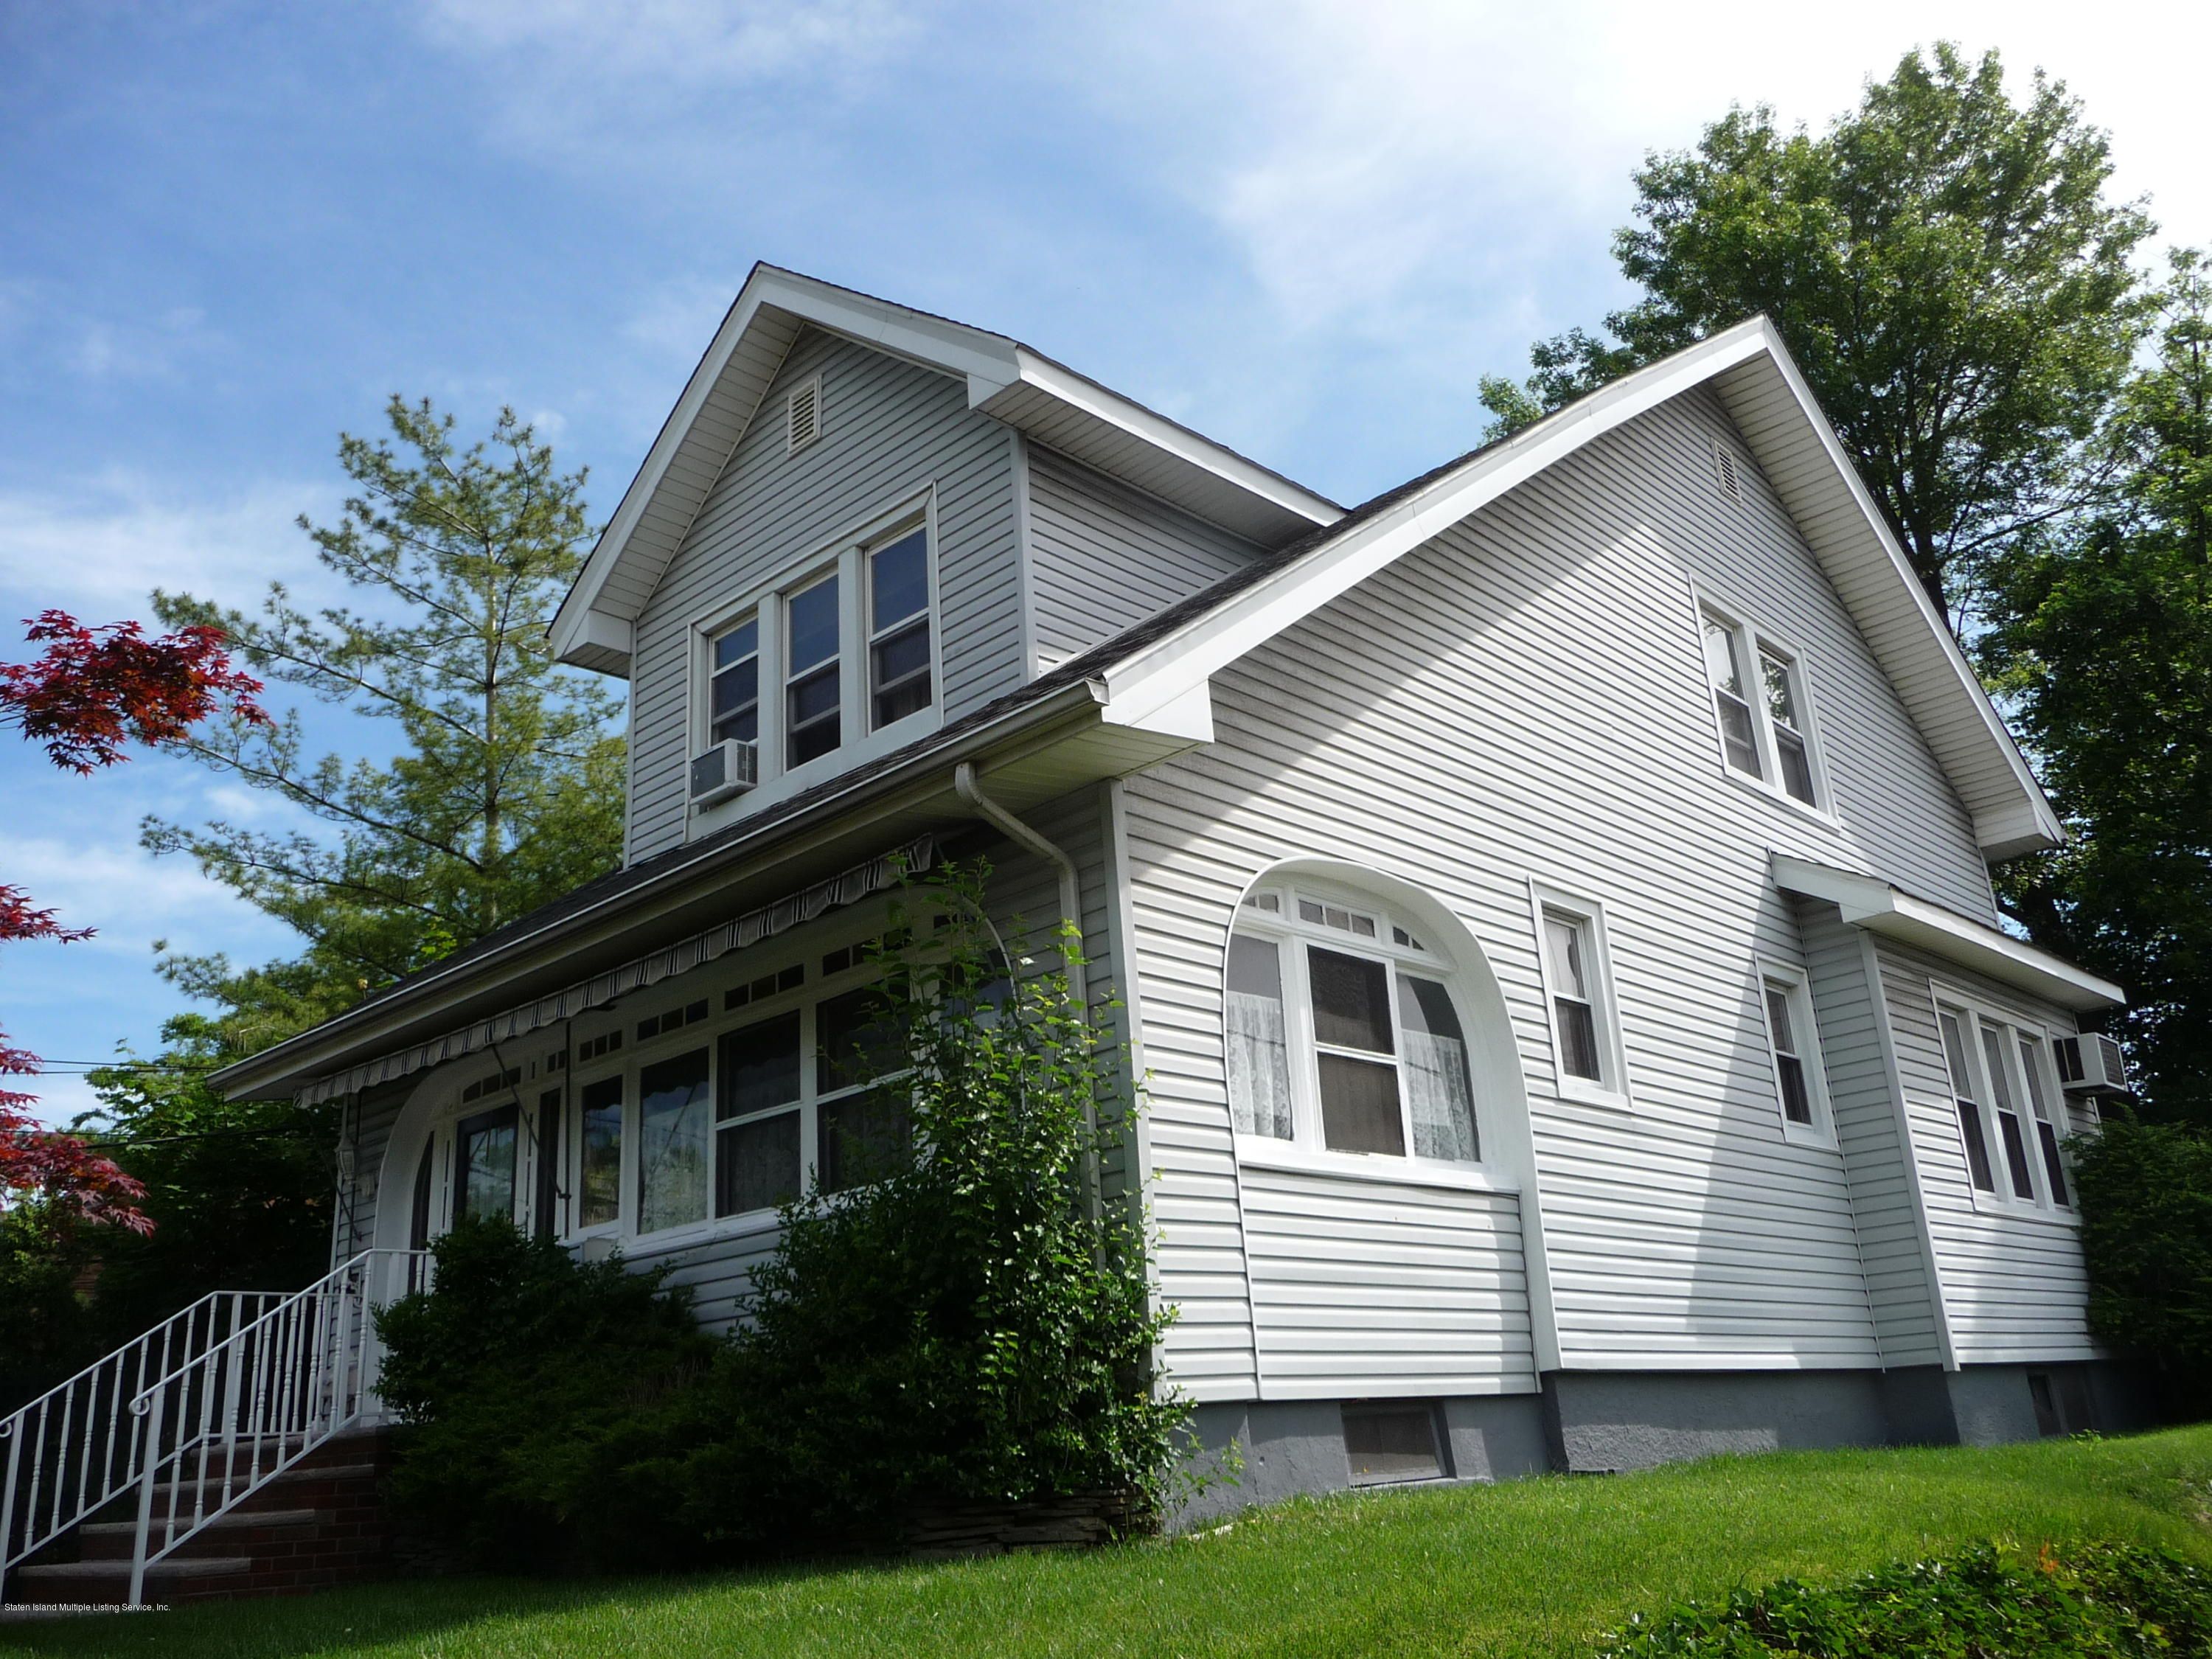 Single Family - Detached 77 Todt Hill Road  Staten Island, NY 10314, MLS-1129718-4